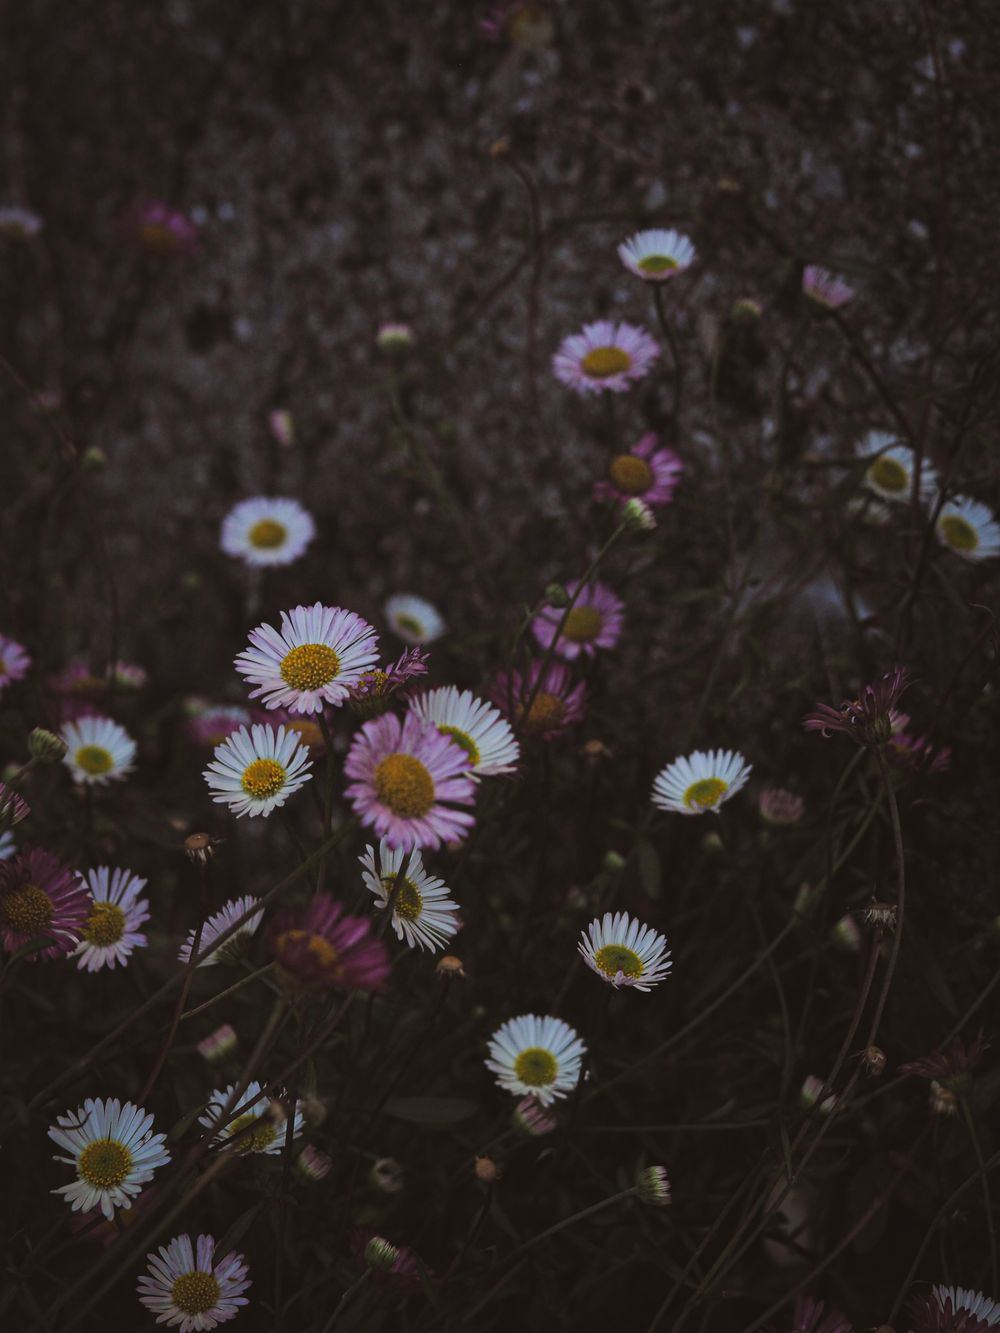 moody flowers - image 1 - student project